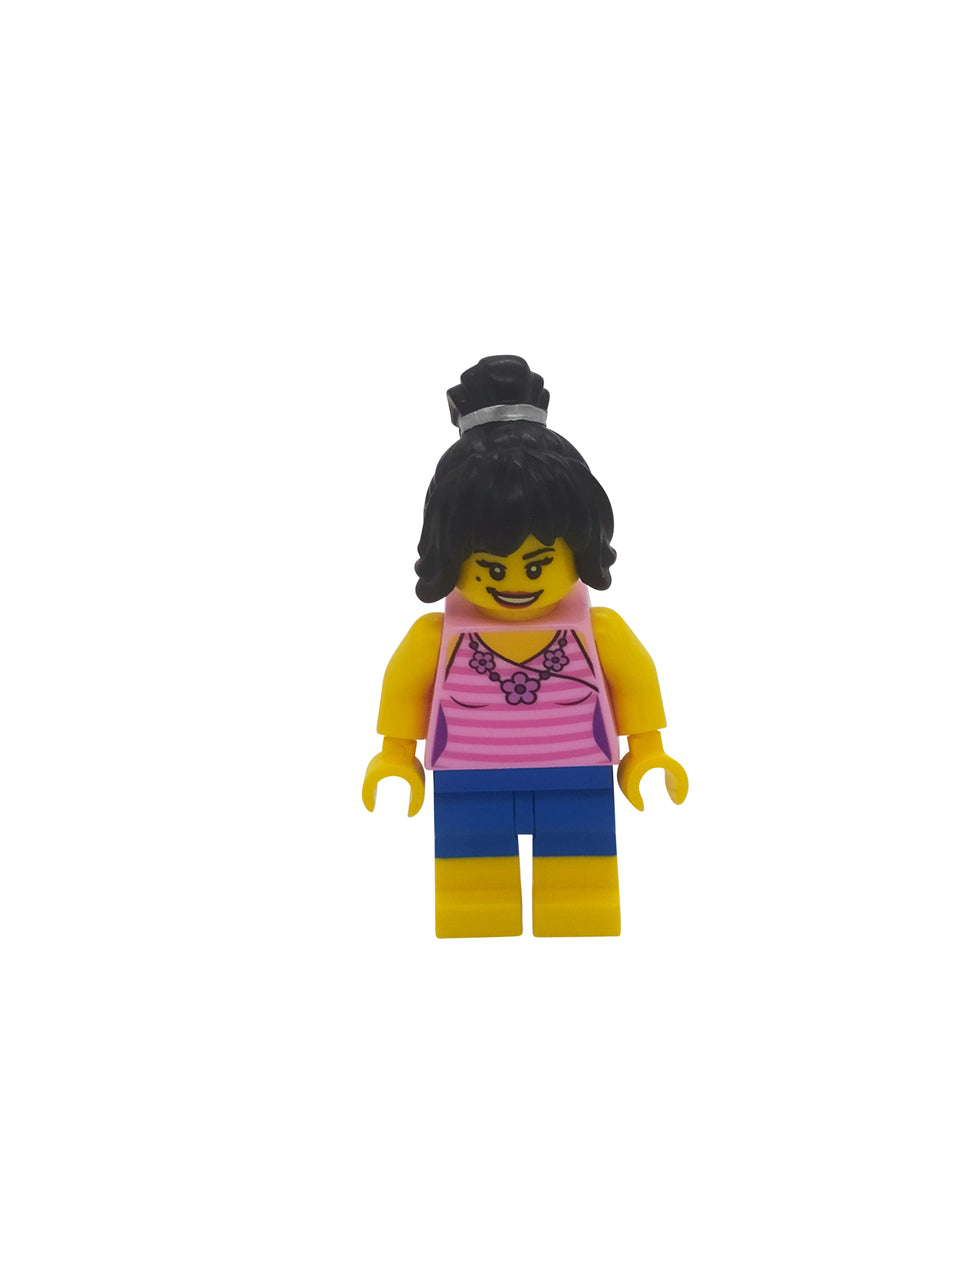 Cool figure with a pink shirt and black hair - Lego